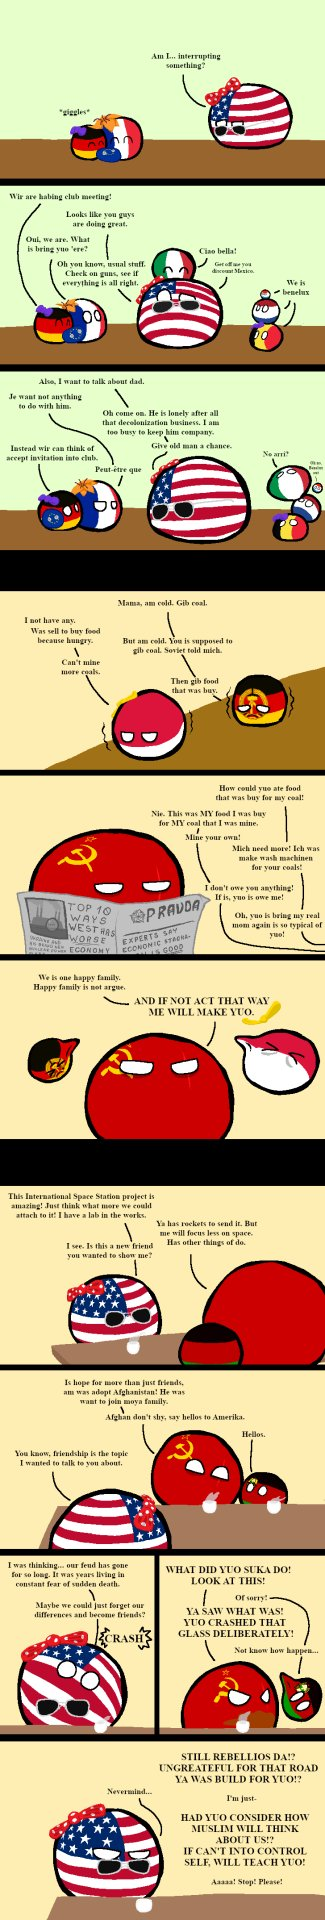 Countryballs New Cold War By Gtacartoons On Deviantart